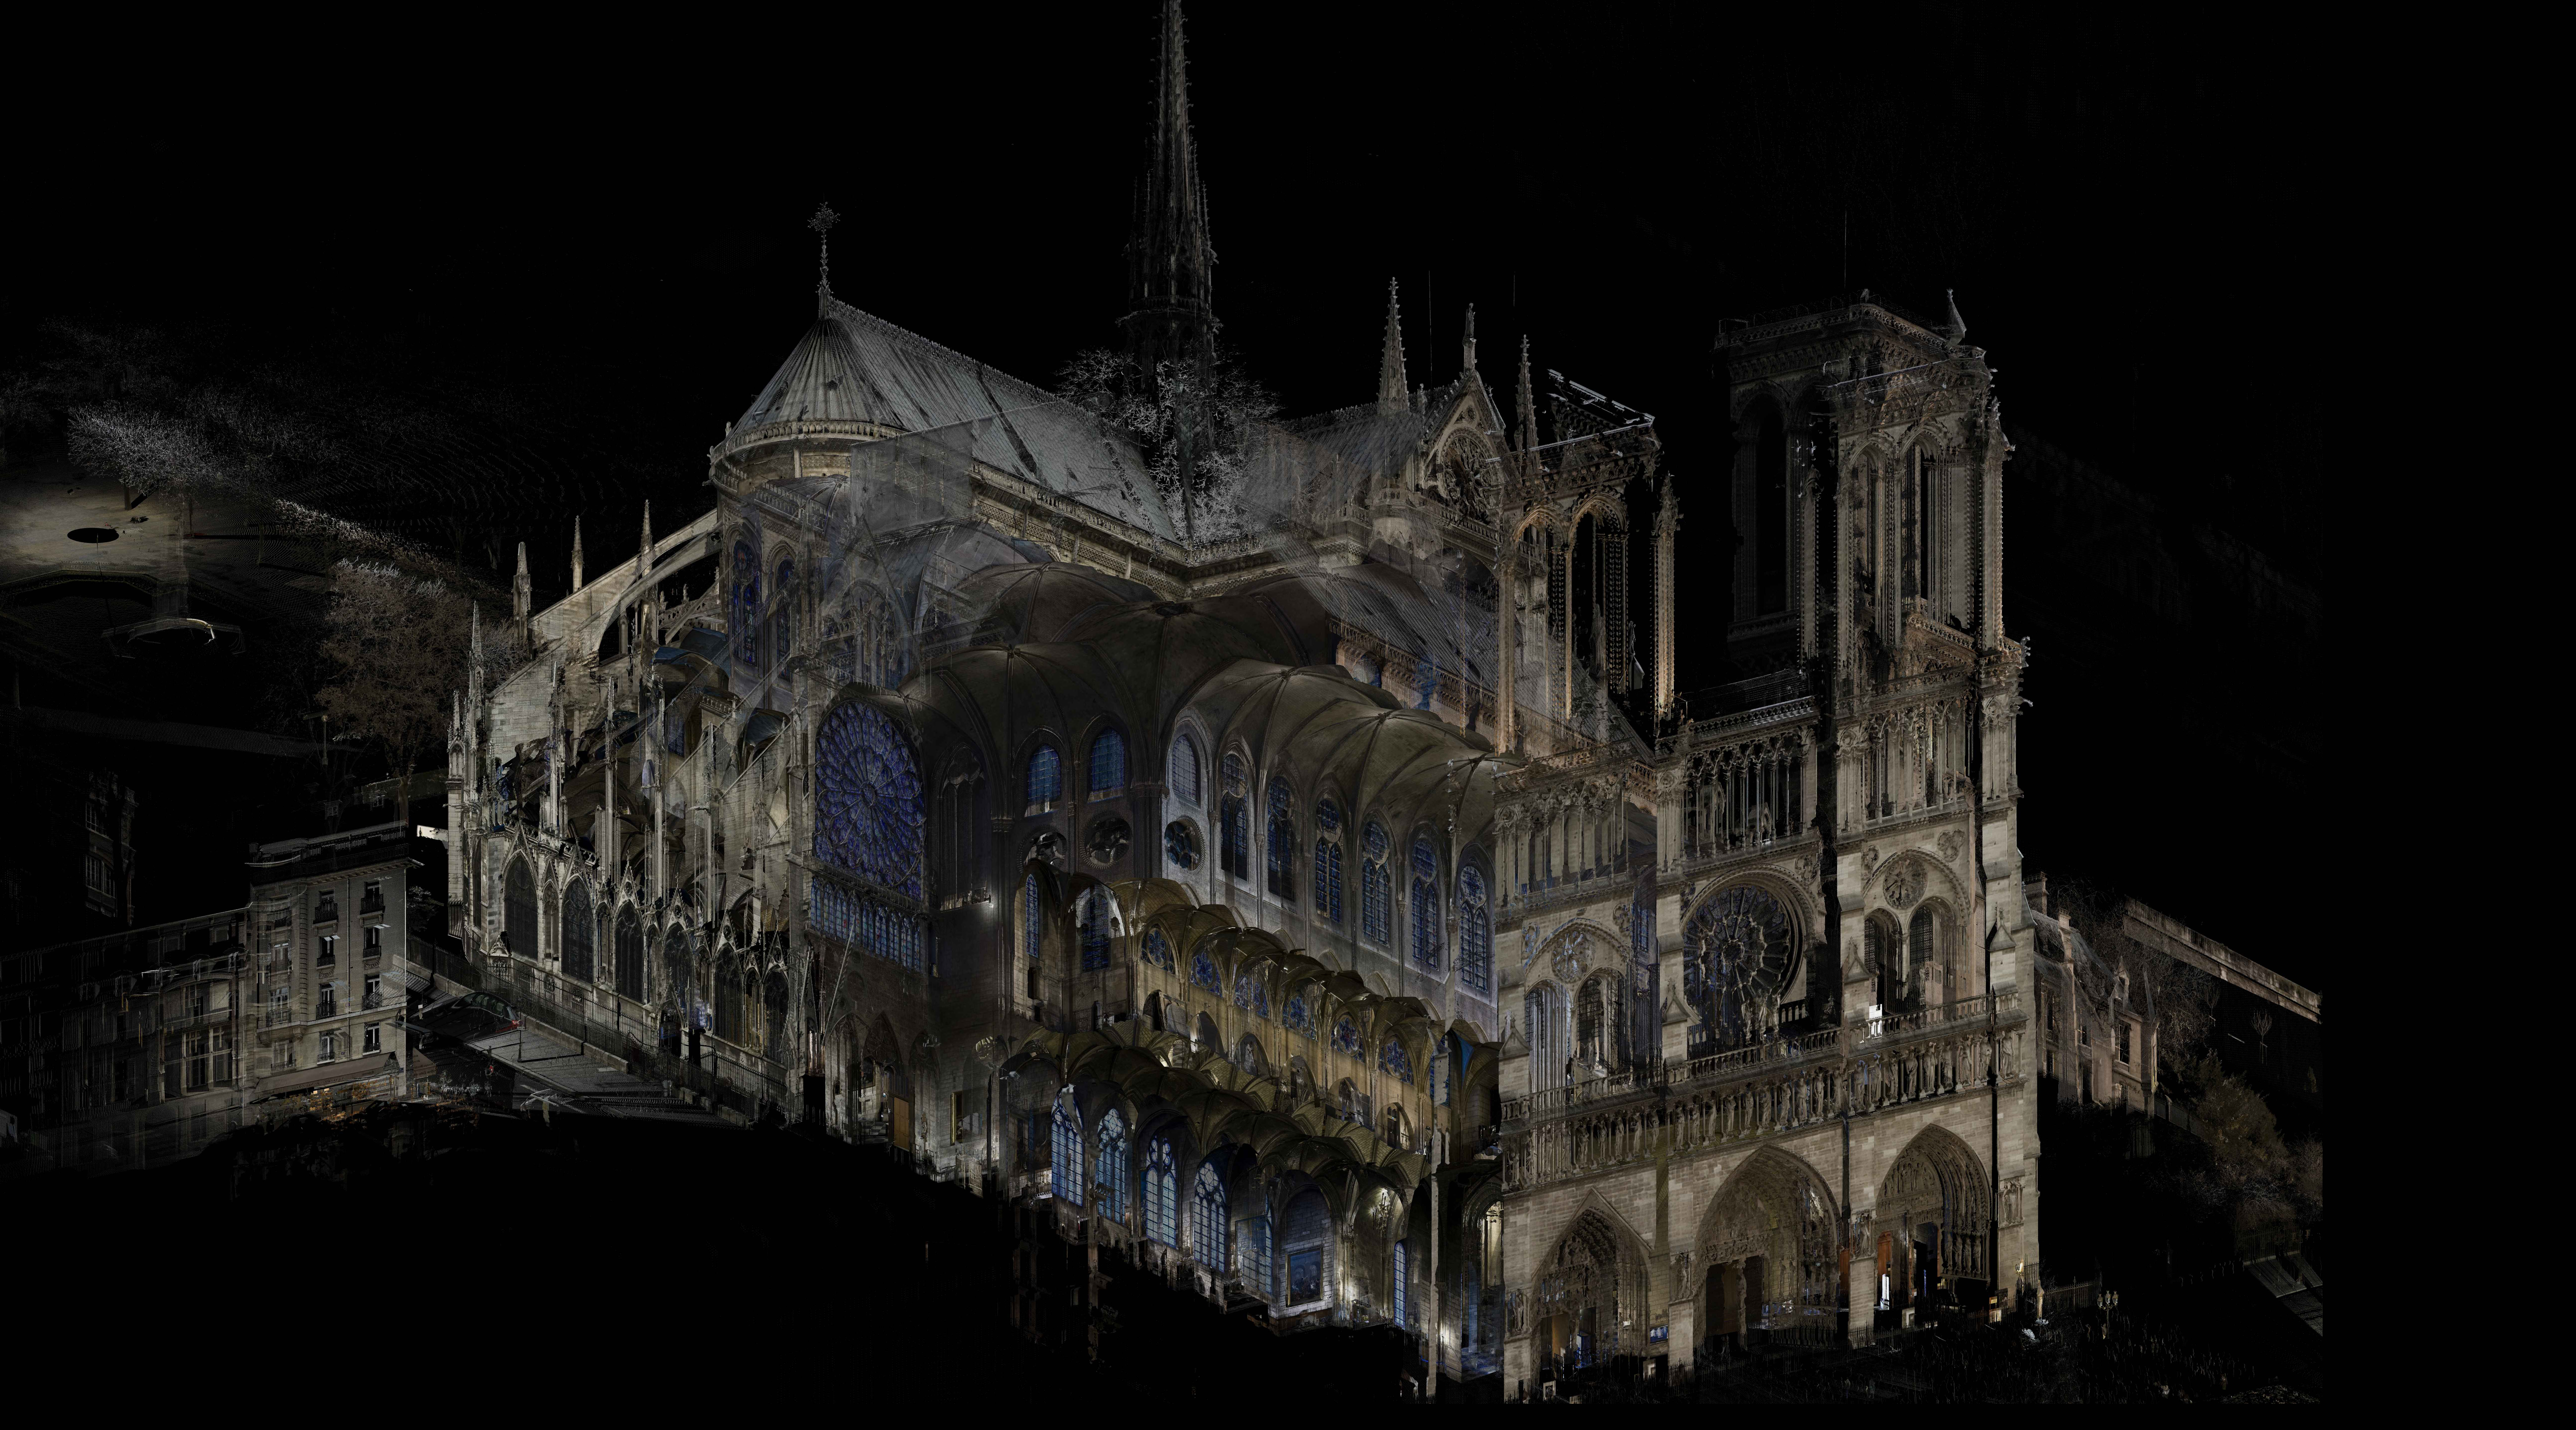 03 Notre Dame, Paris - Point cloud